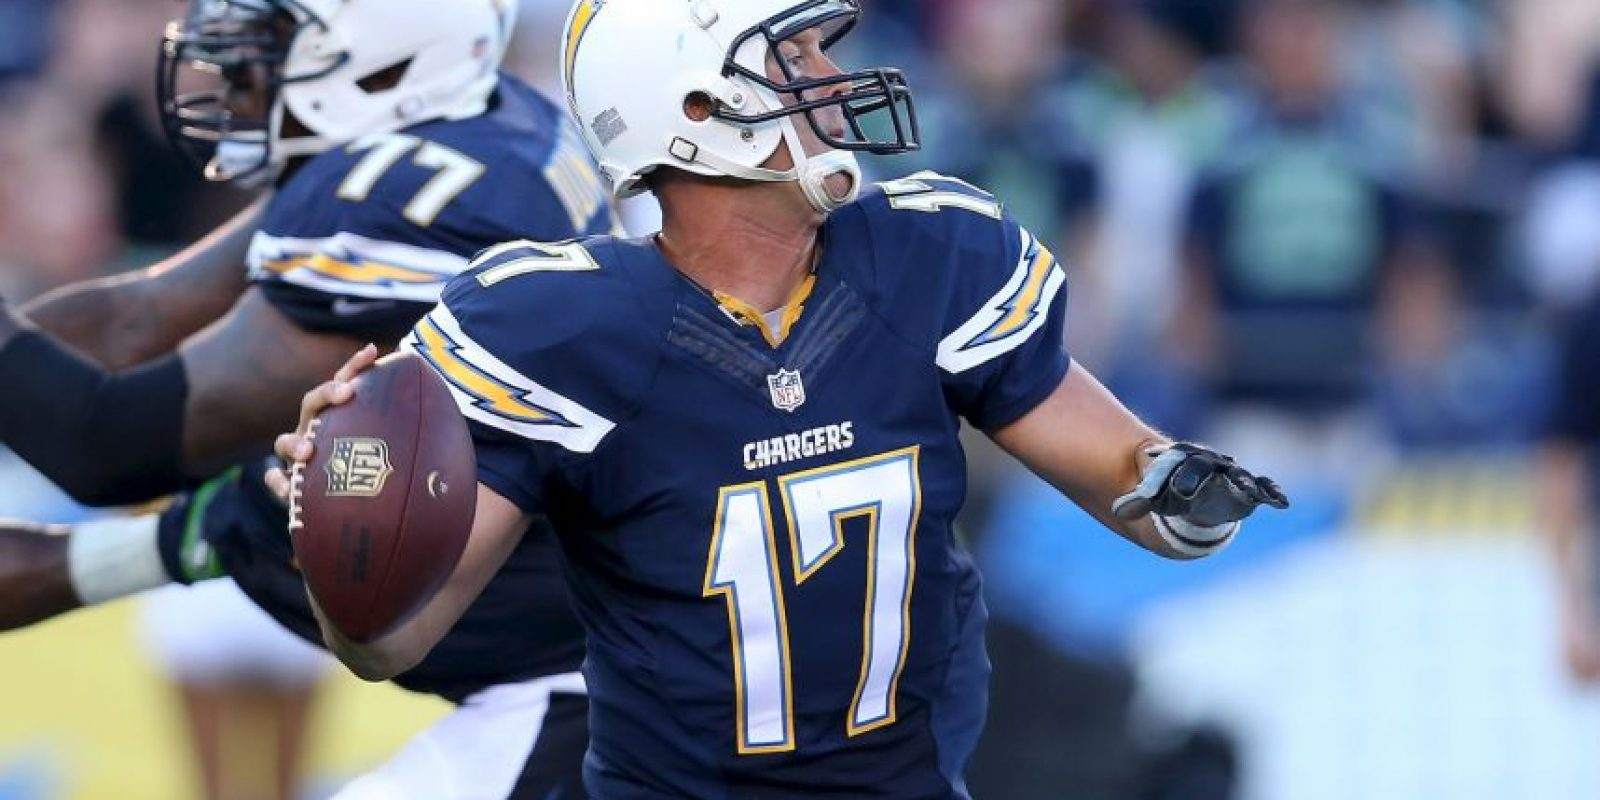 2. Philip Rivers Foto: Getty Images